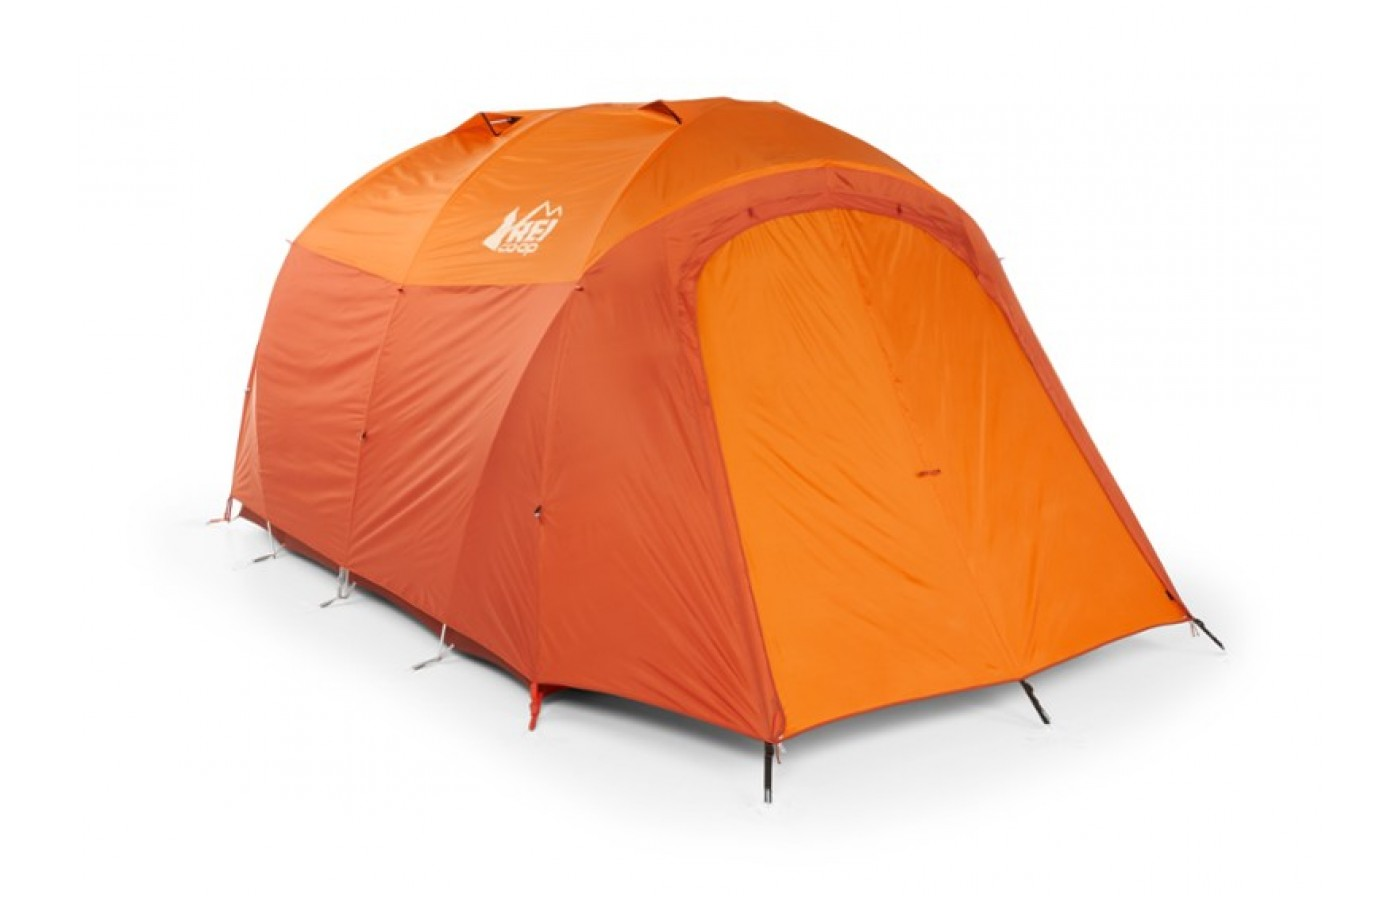 Half of the interior of the tent is mesh, the other is made of a more substantial tent fabric.